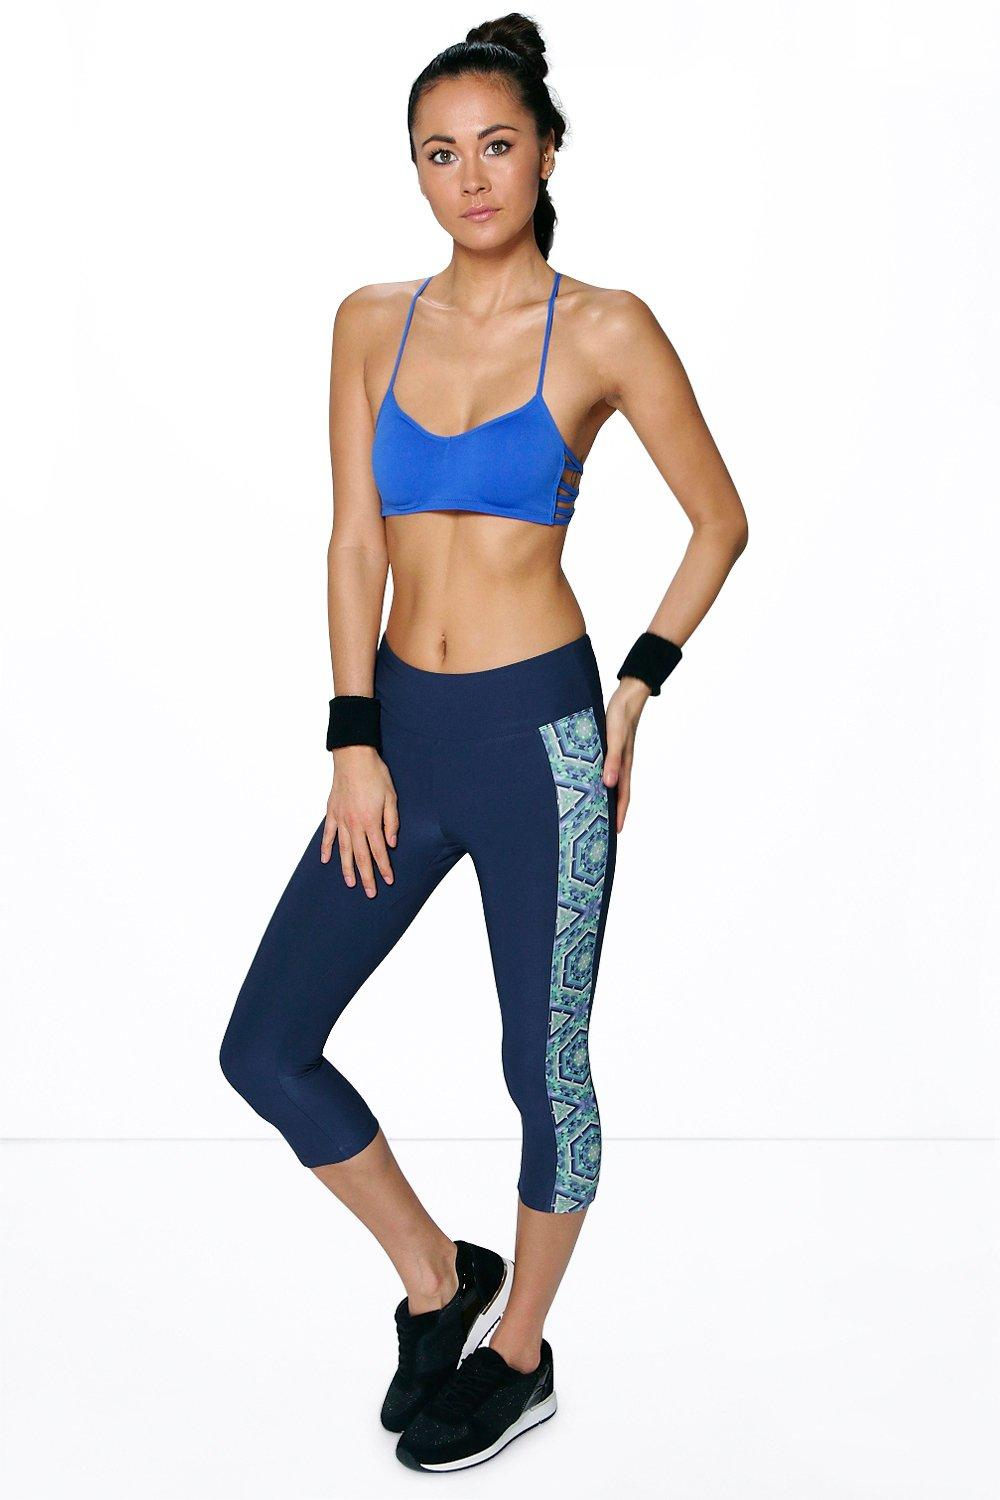 Abbie Fit Breathable 3/4 Length Printed Side Legging